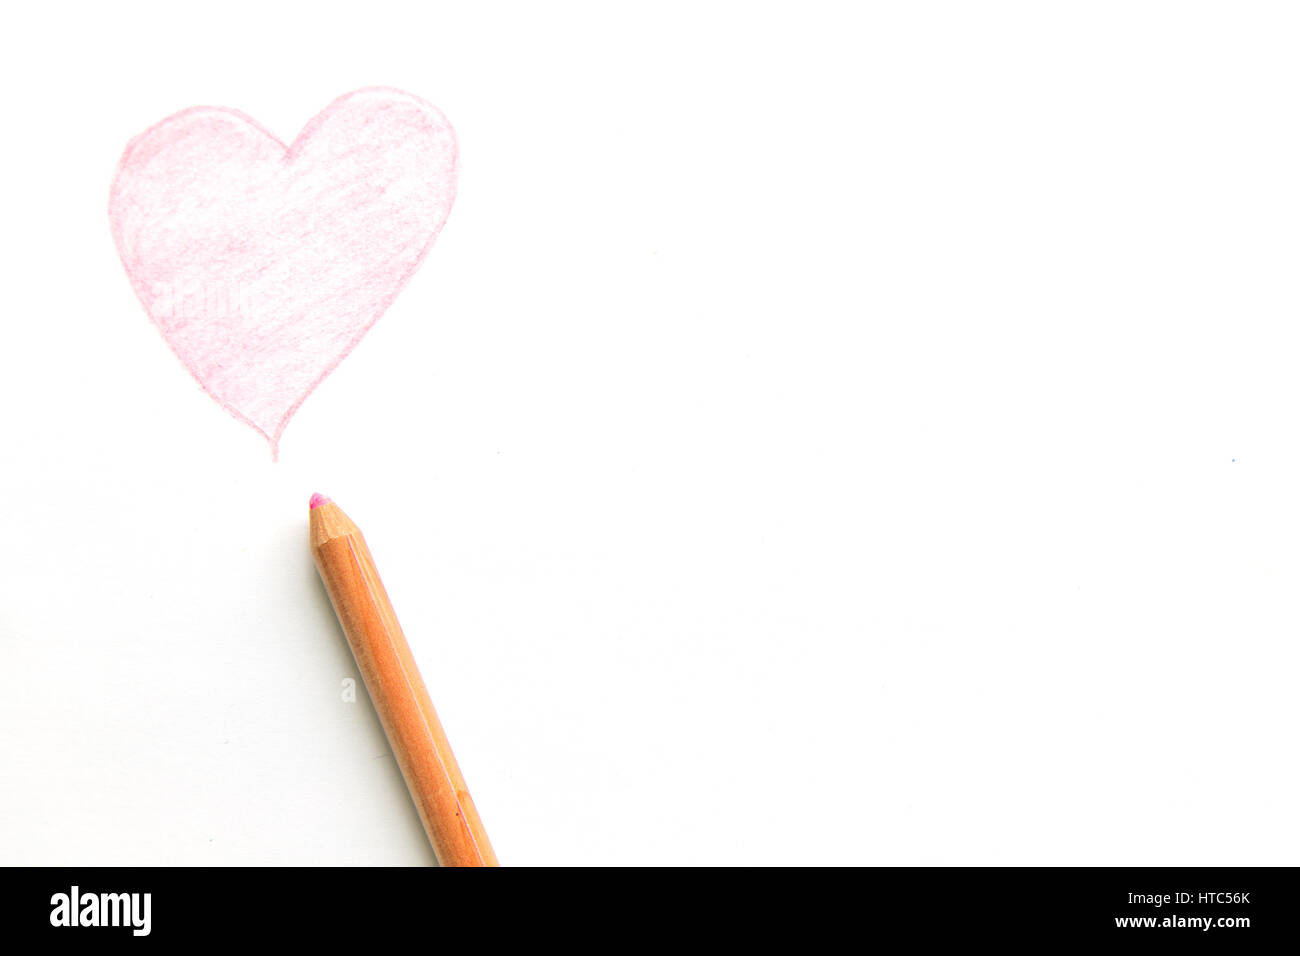 Line Drawing Heart Shape : Drawing heart shape with pencil isolated on white background stock